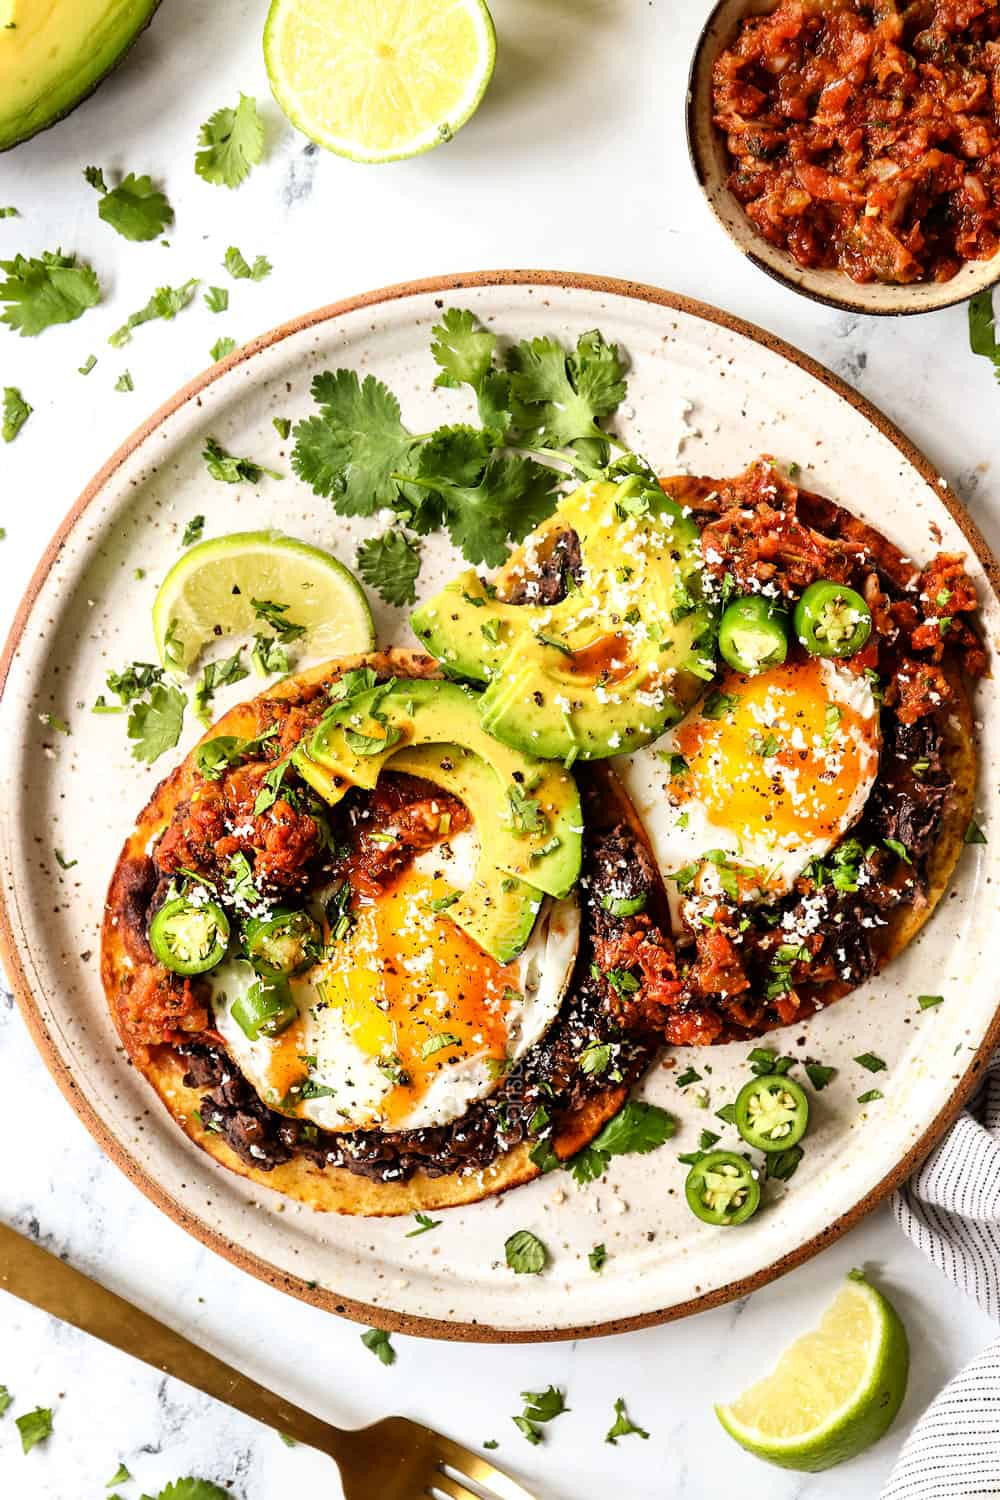 showing how to assemble Huevos Rancheros by adding refried beans, fried eggs, warmed salsa to a corn tortilla